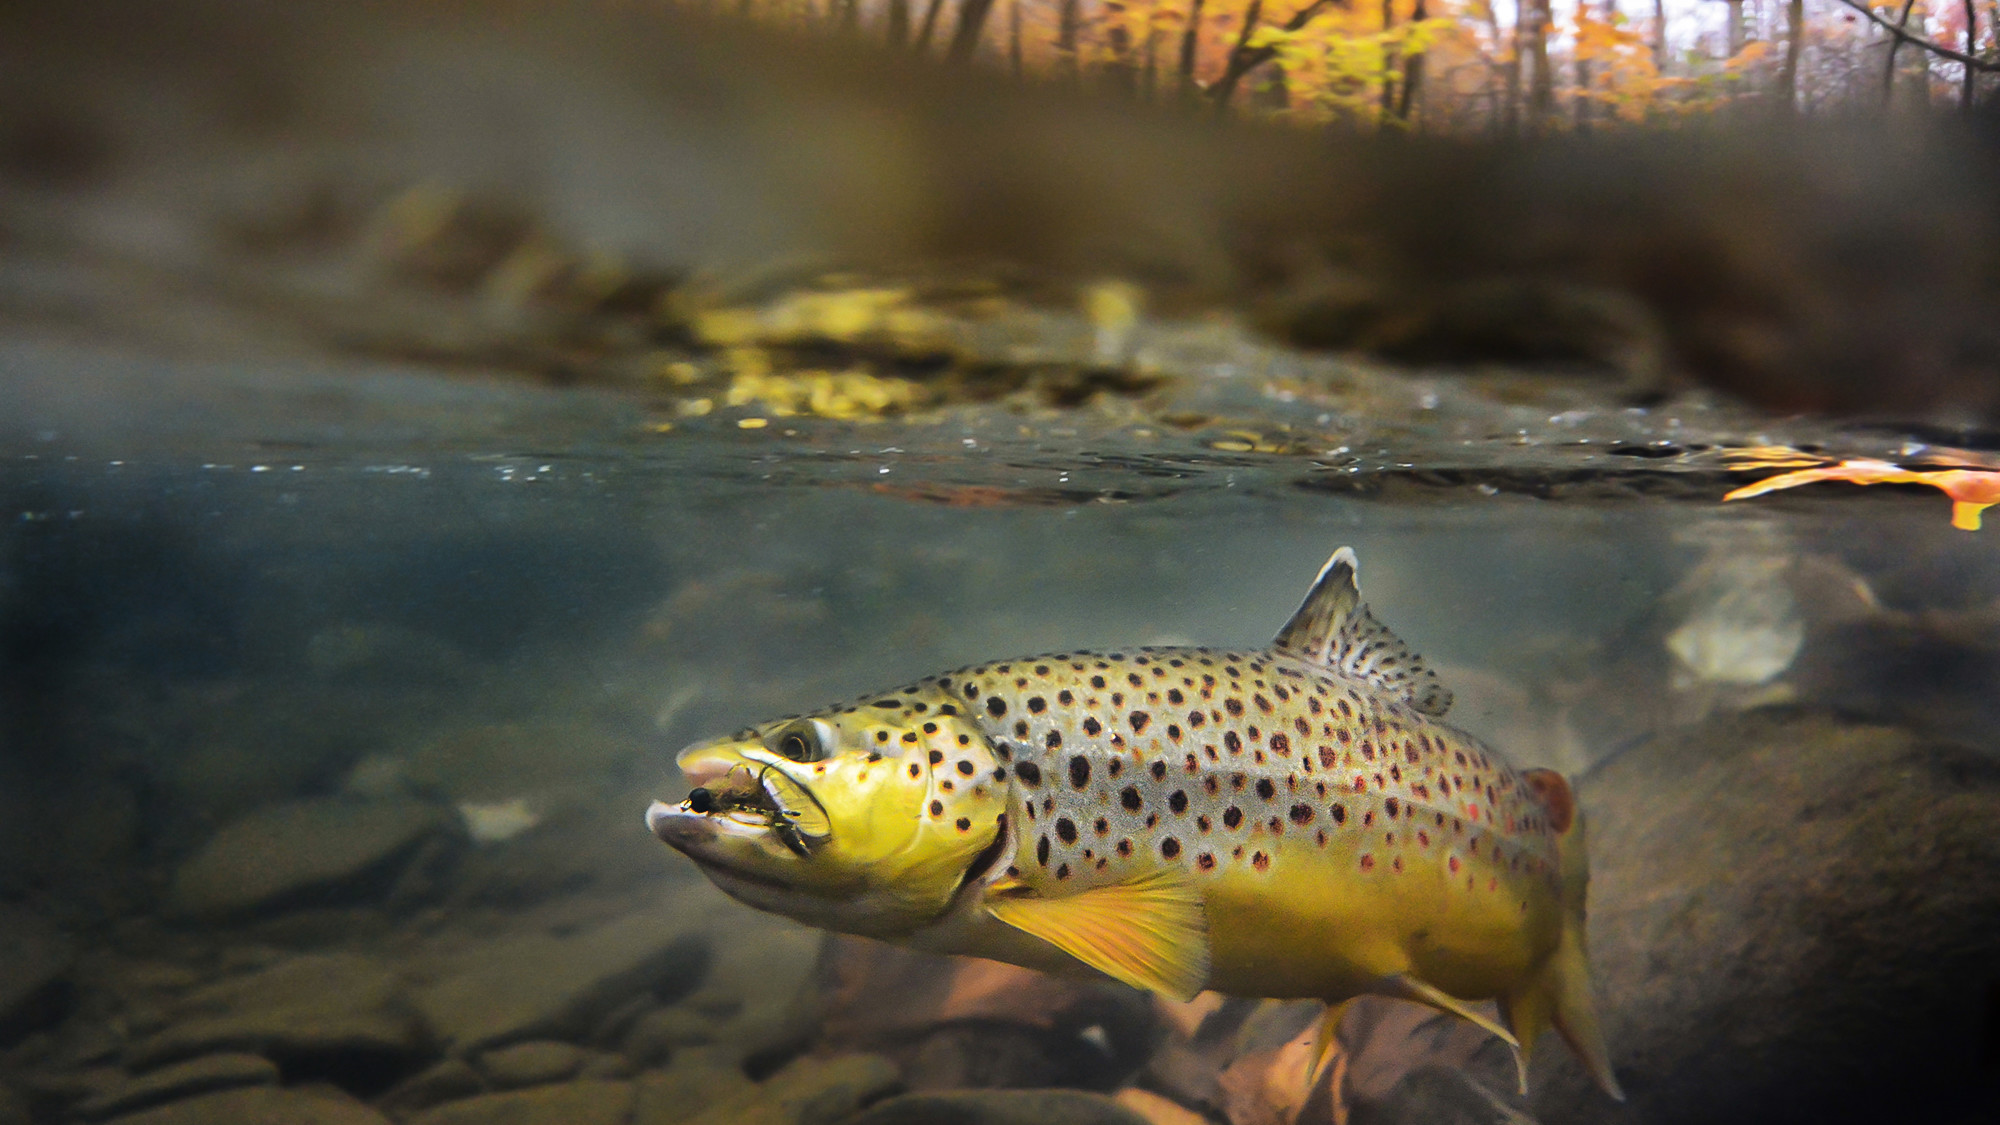 Fly Fishing Wallpaper 45 images 2000x1125